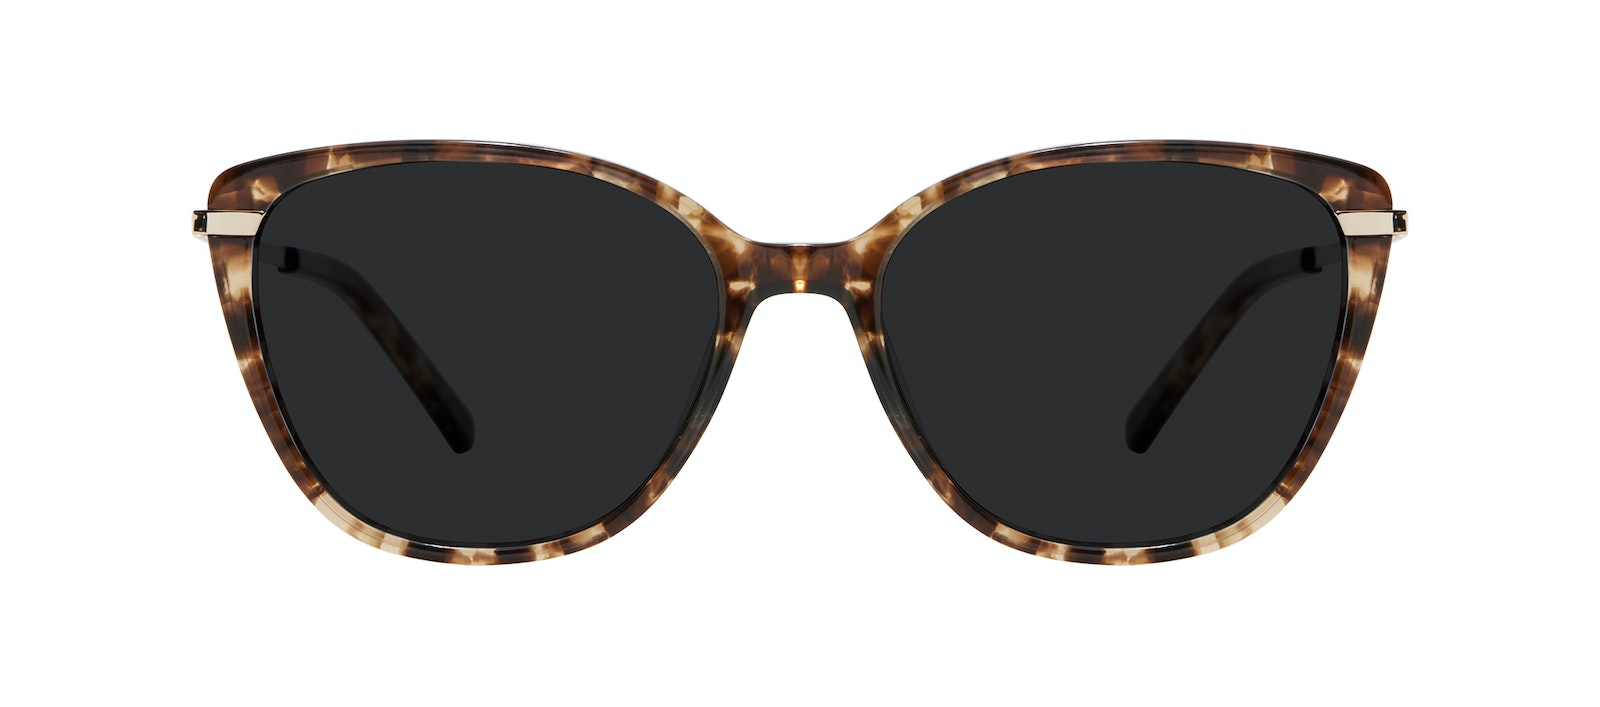 Affordable Fashion Glasses Rectangle Square Sunglasses Women Illusion M Leopard Front